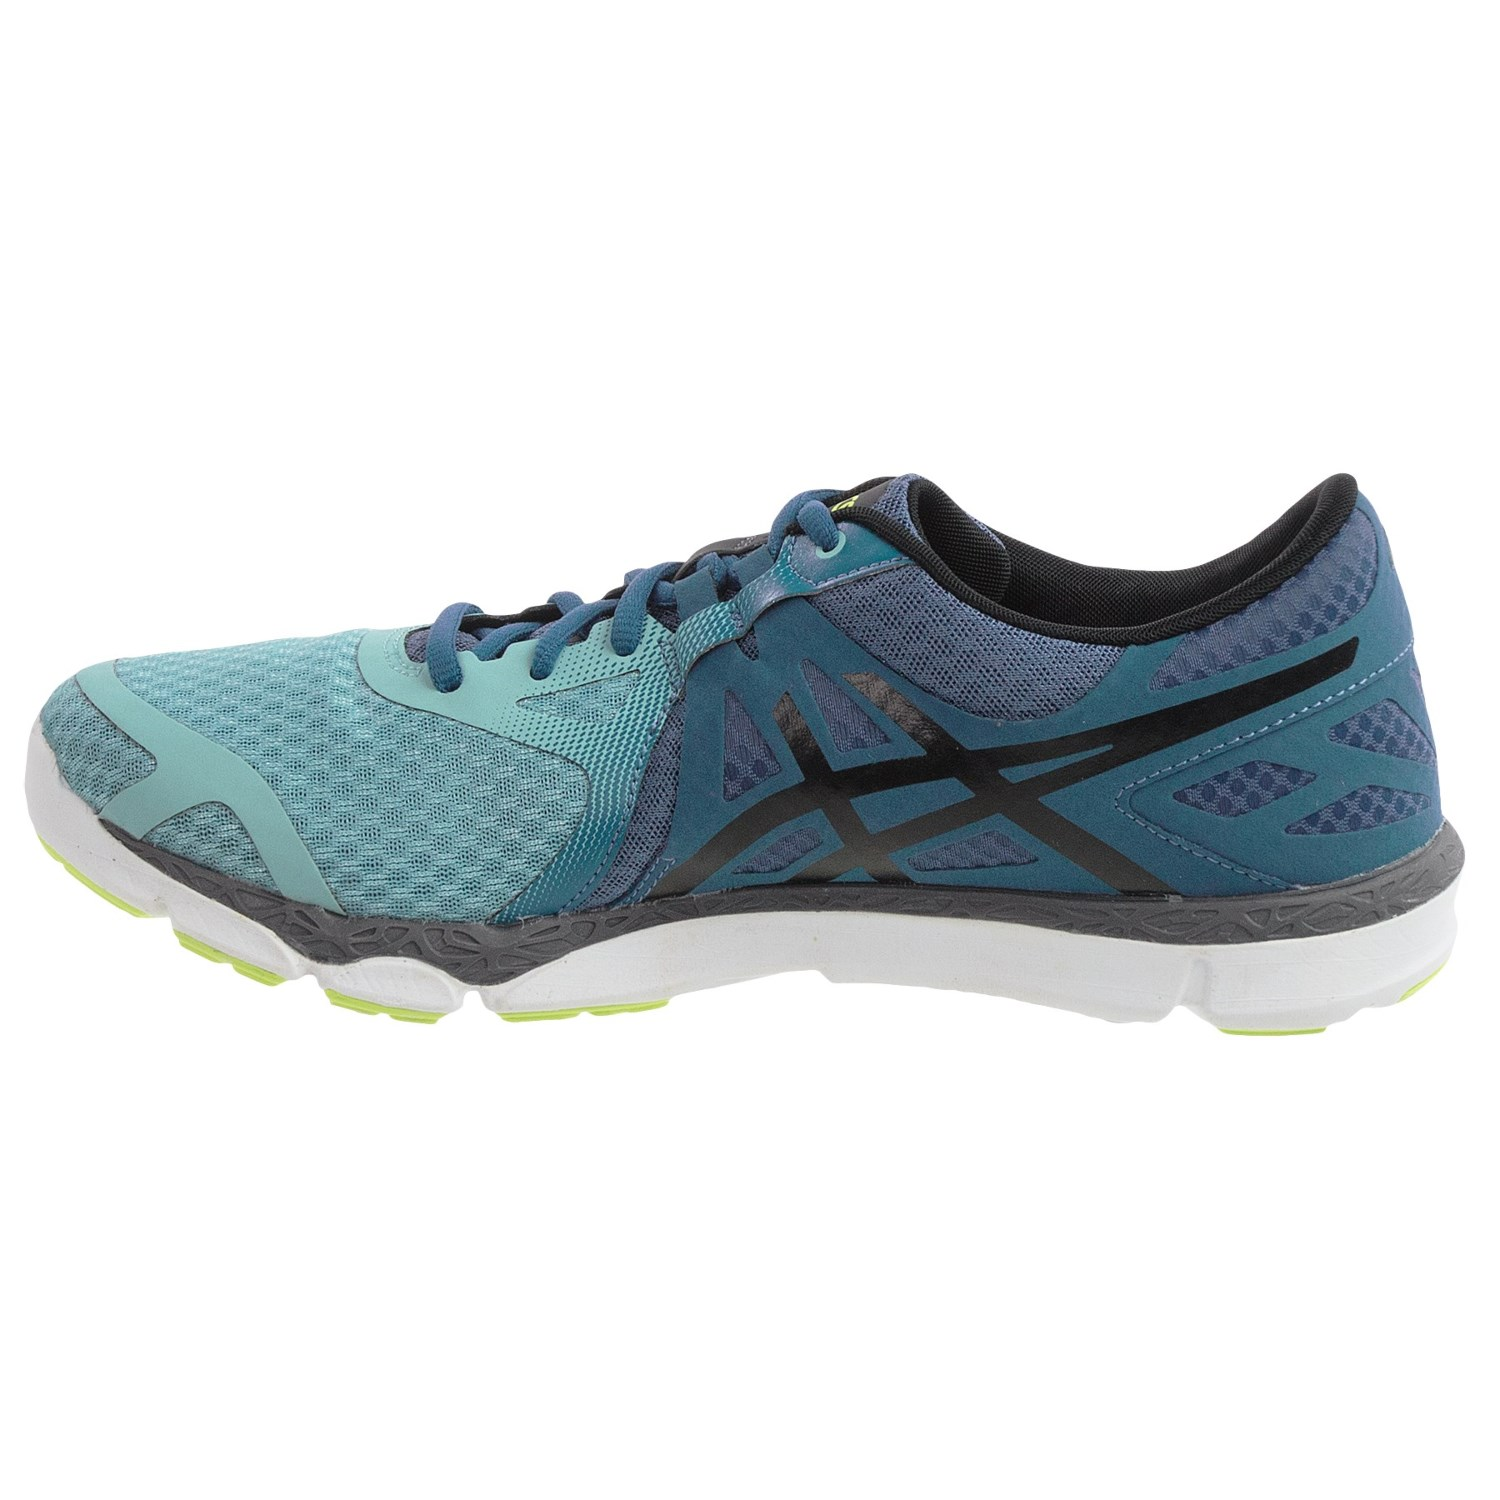 asics 33 dfa running shoes for save 33